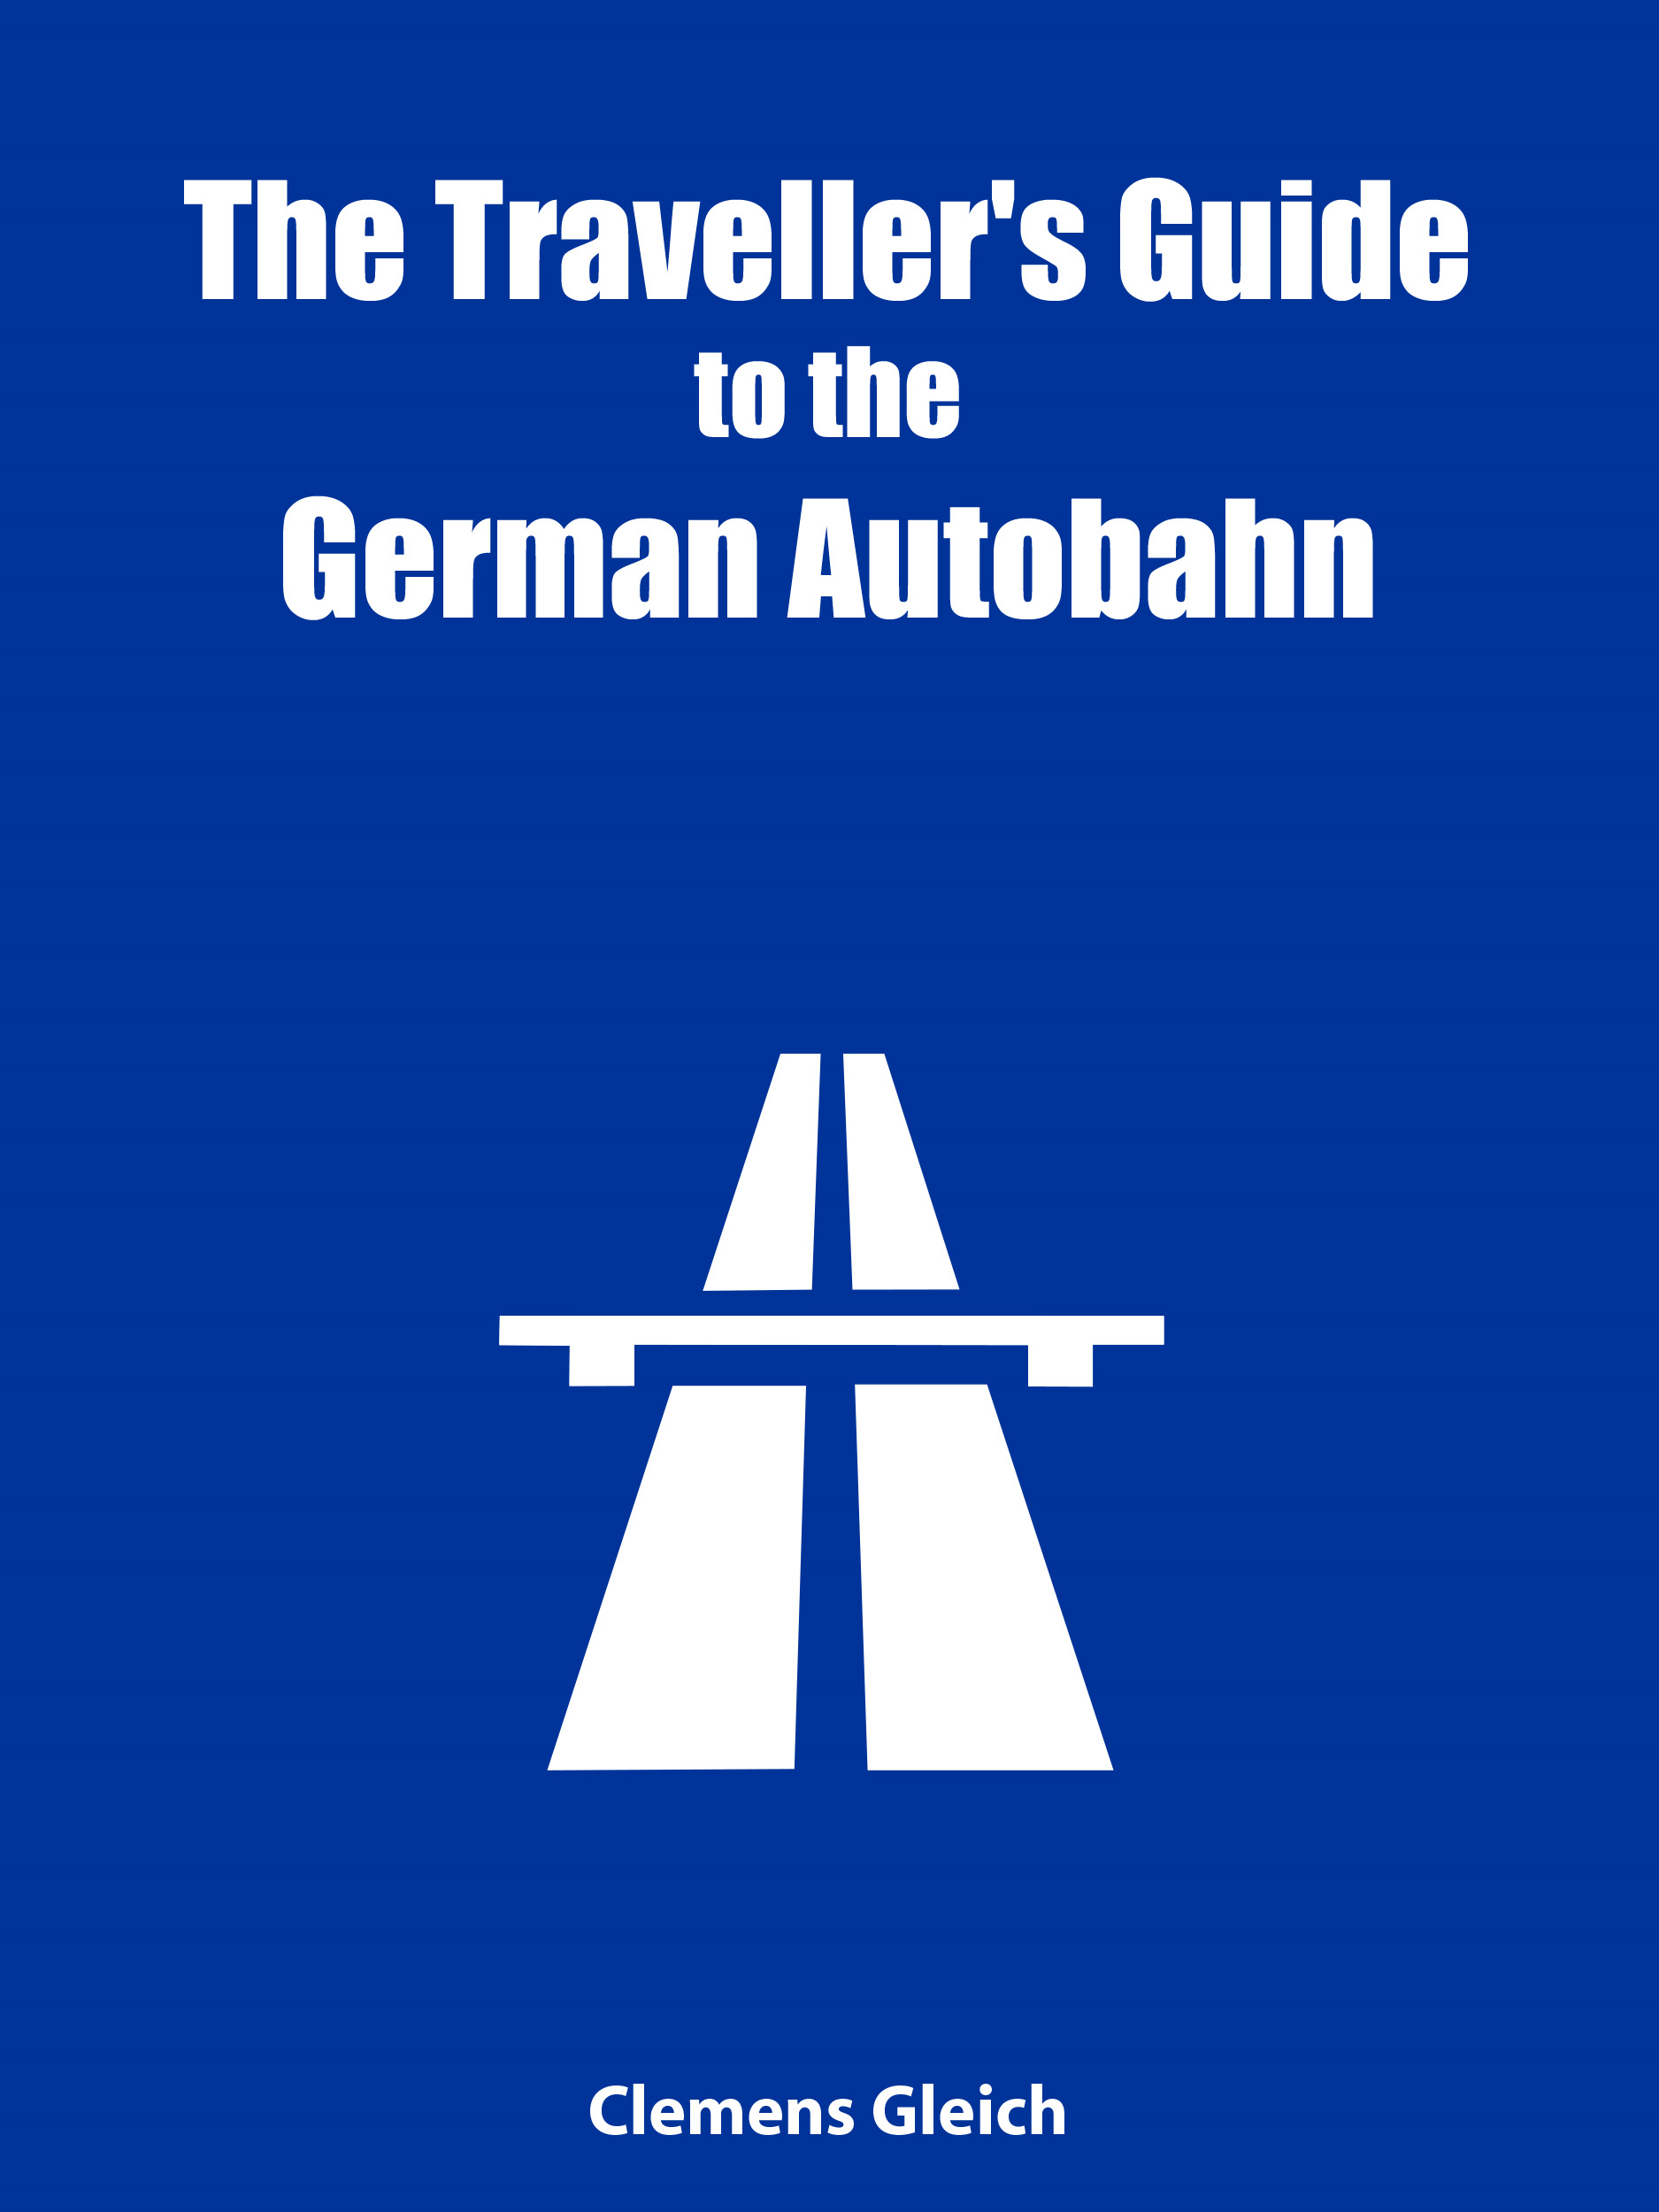 The Traveller's Guide to the German Autobahn